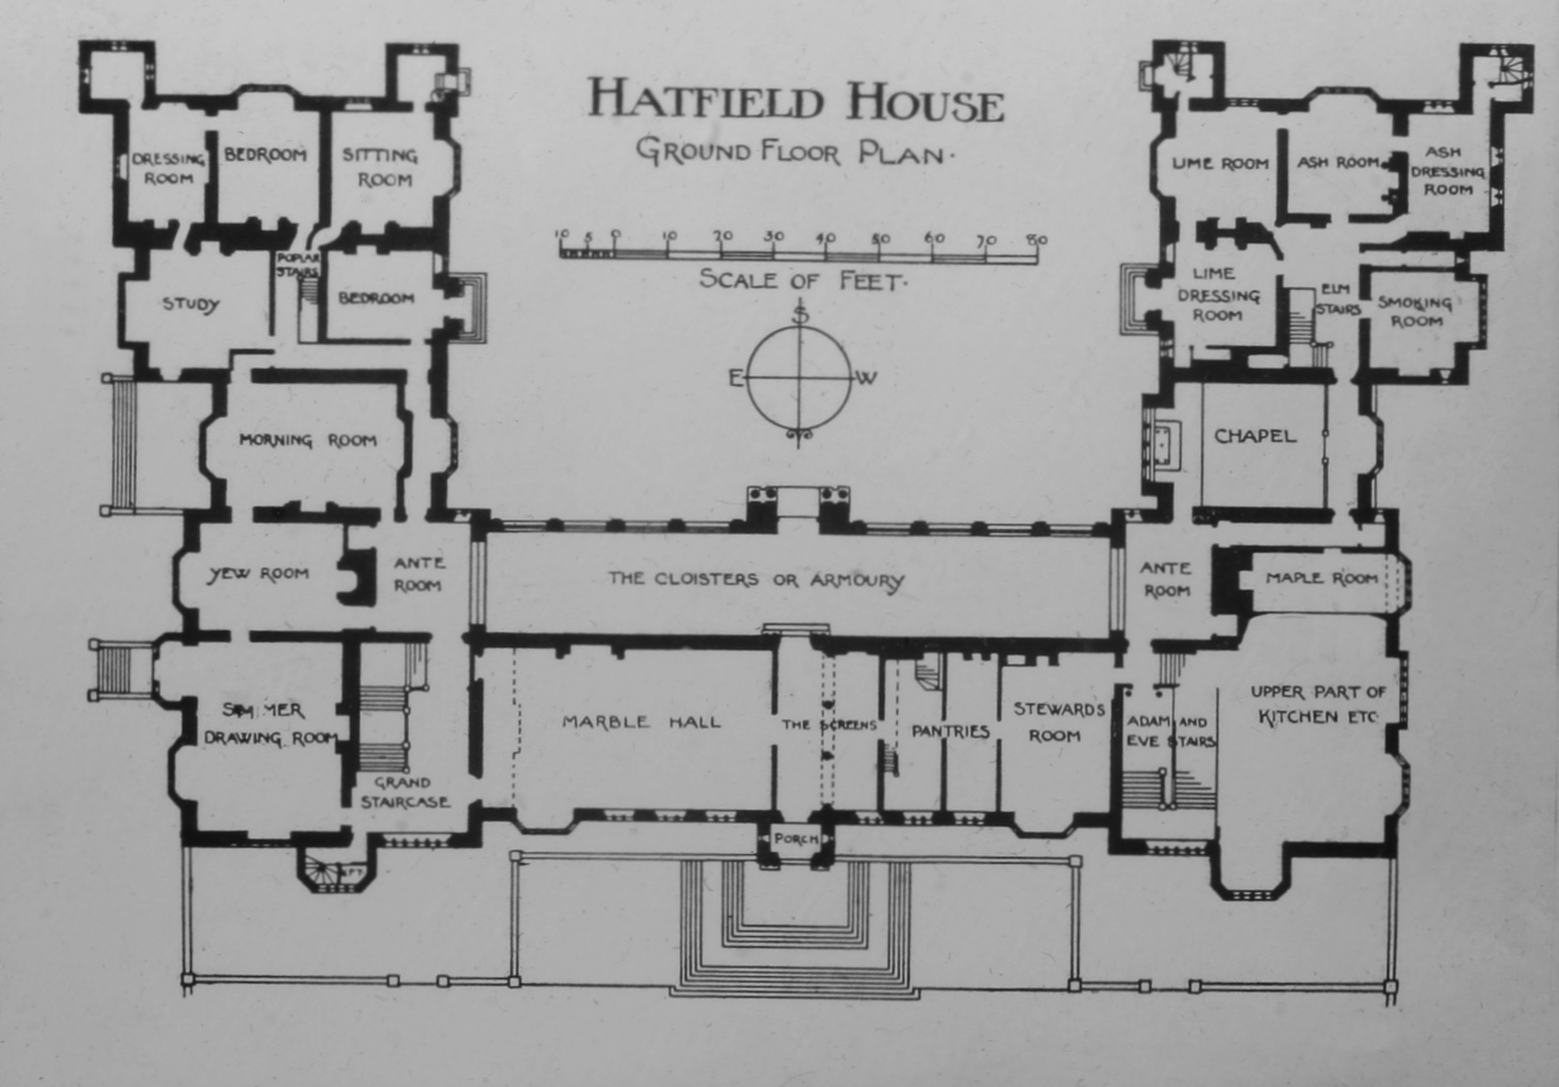 Hatfield House Gallery